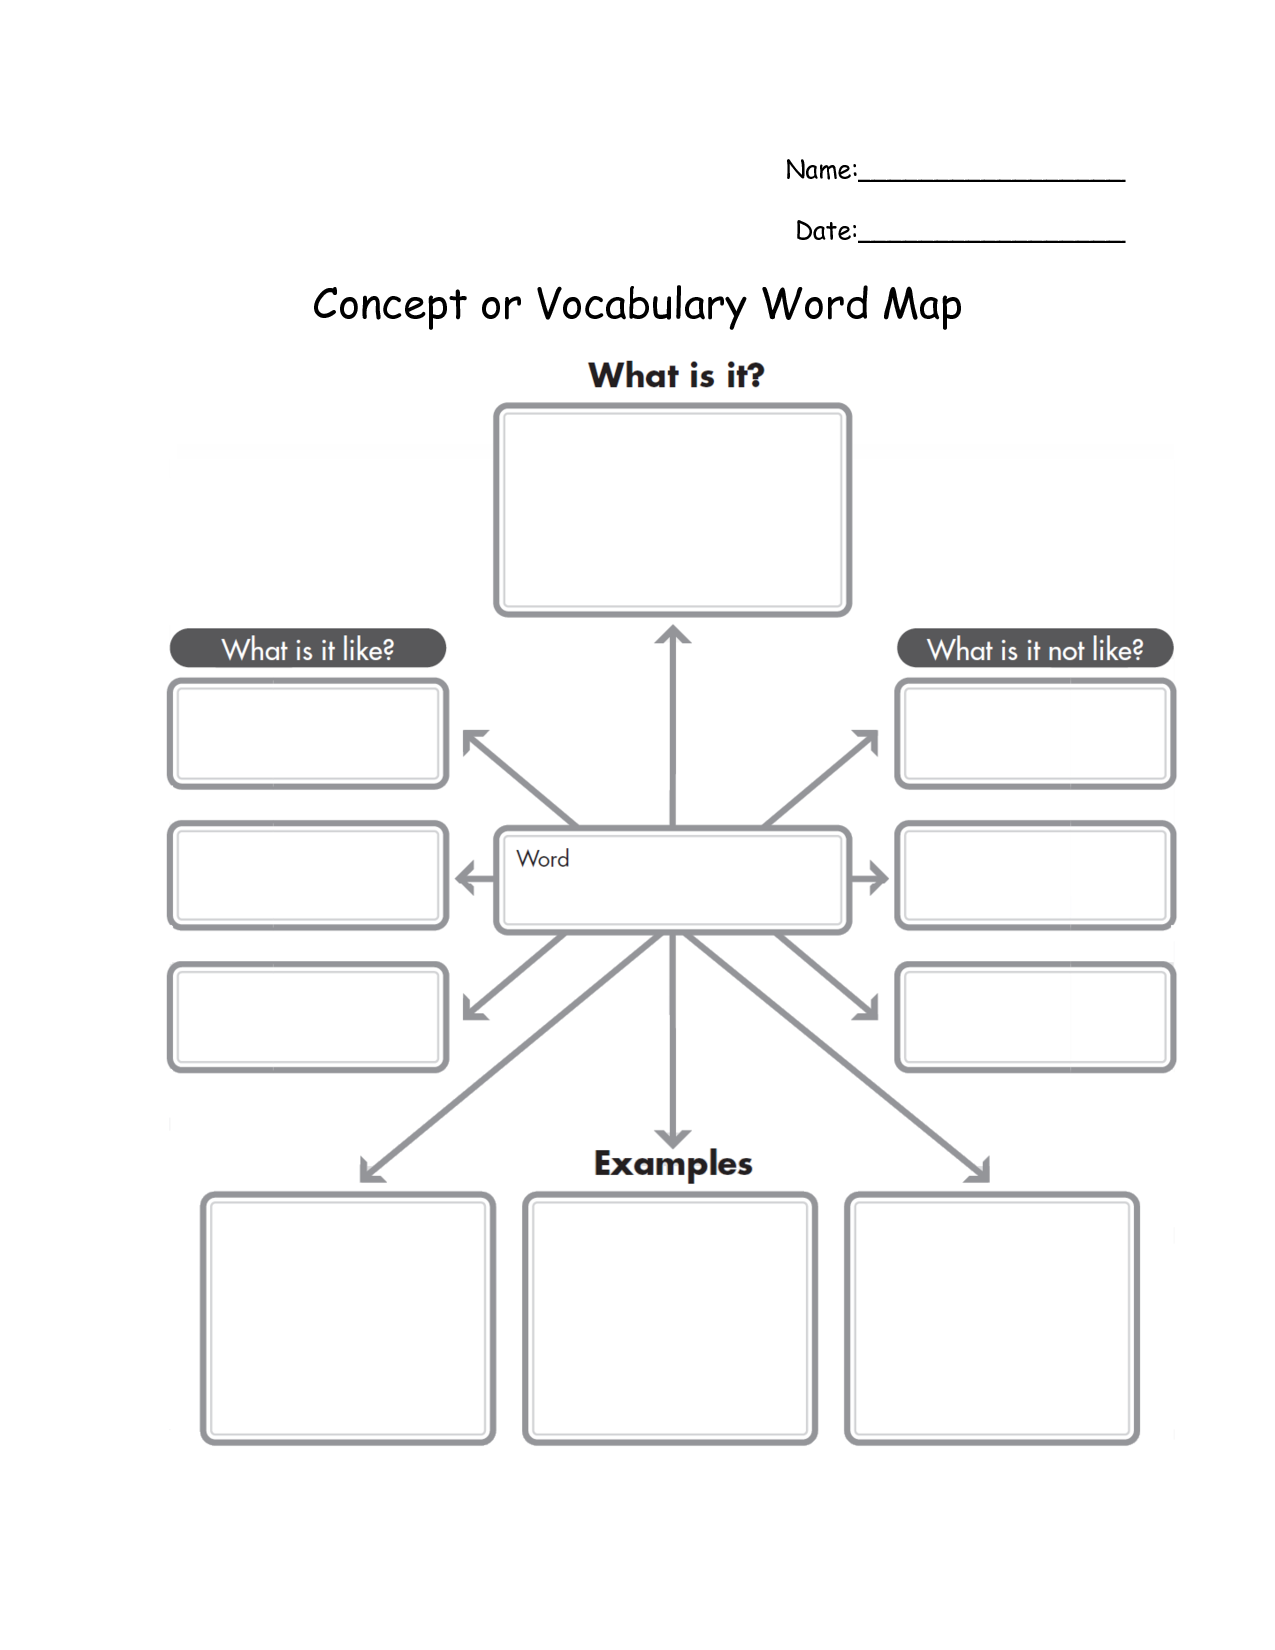 Mind Map Template For Word | Concept or Vocabulary Word Map ...